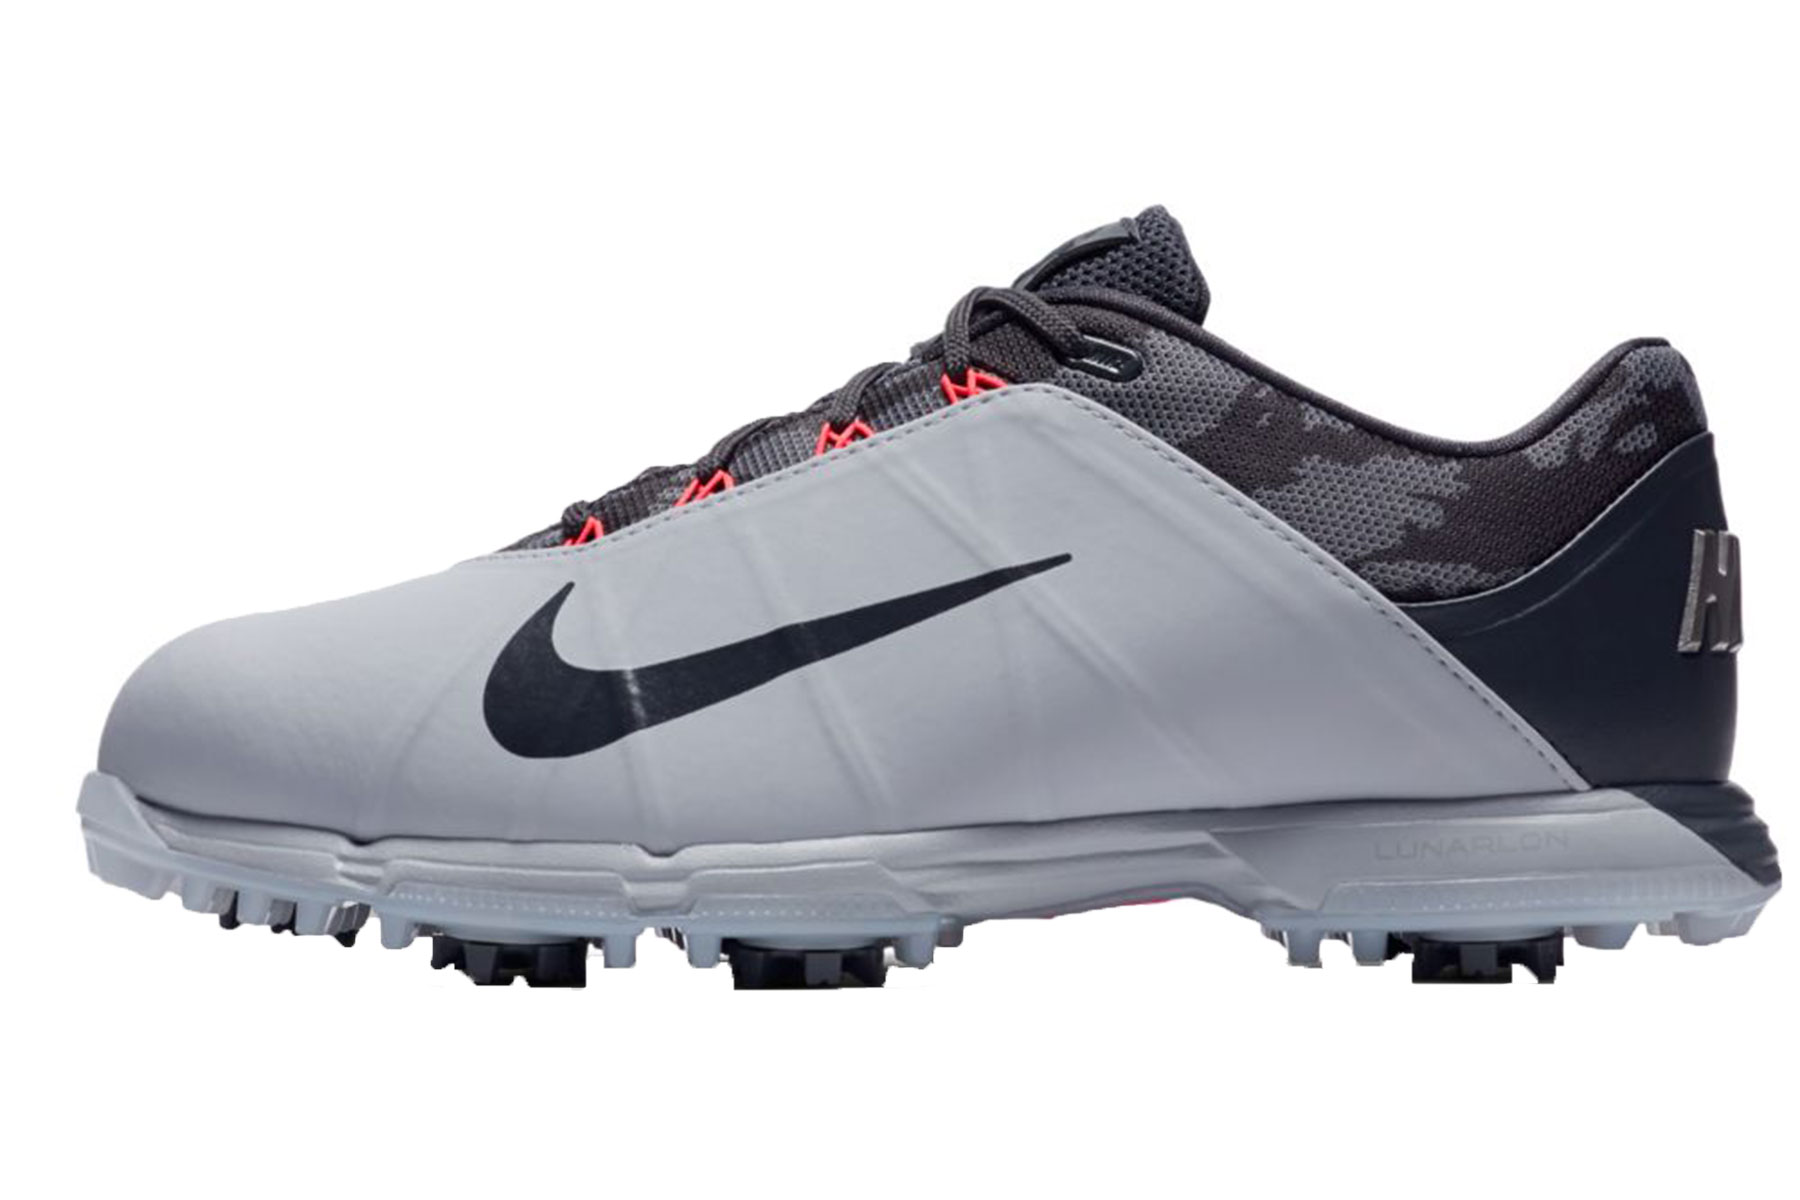 Buy Nike Golf Shoes Online